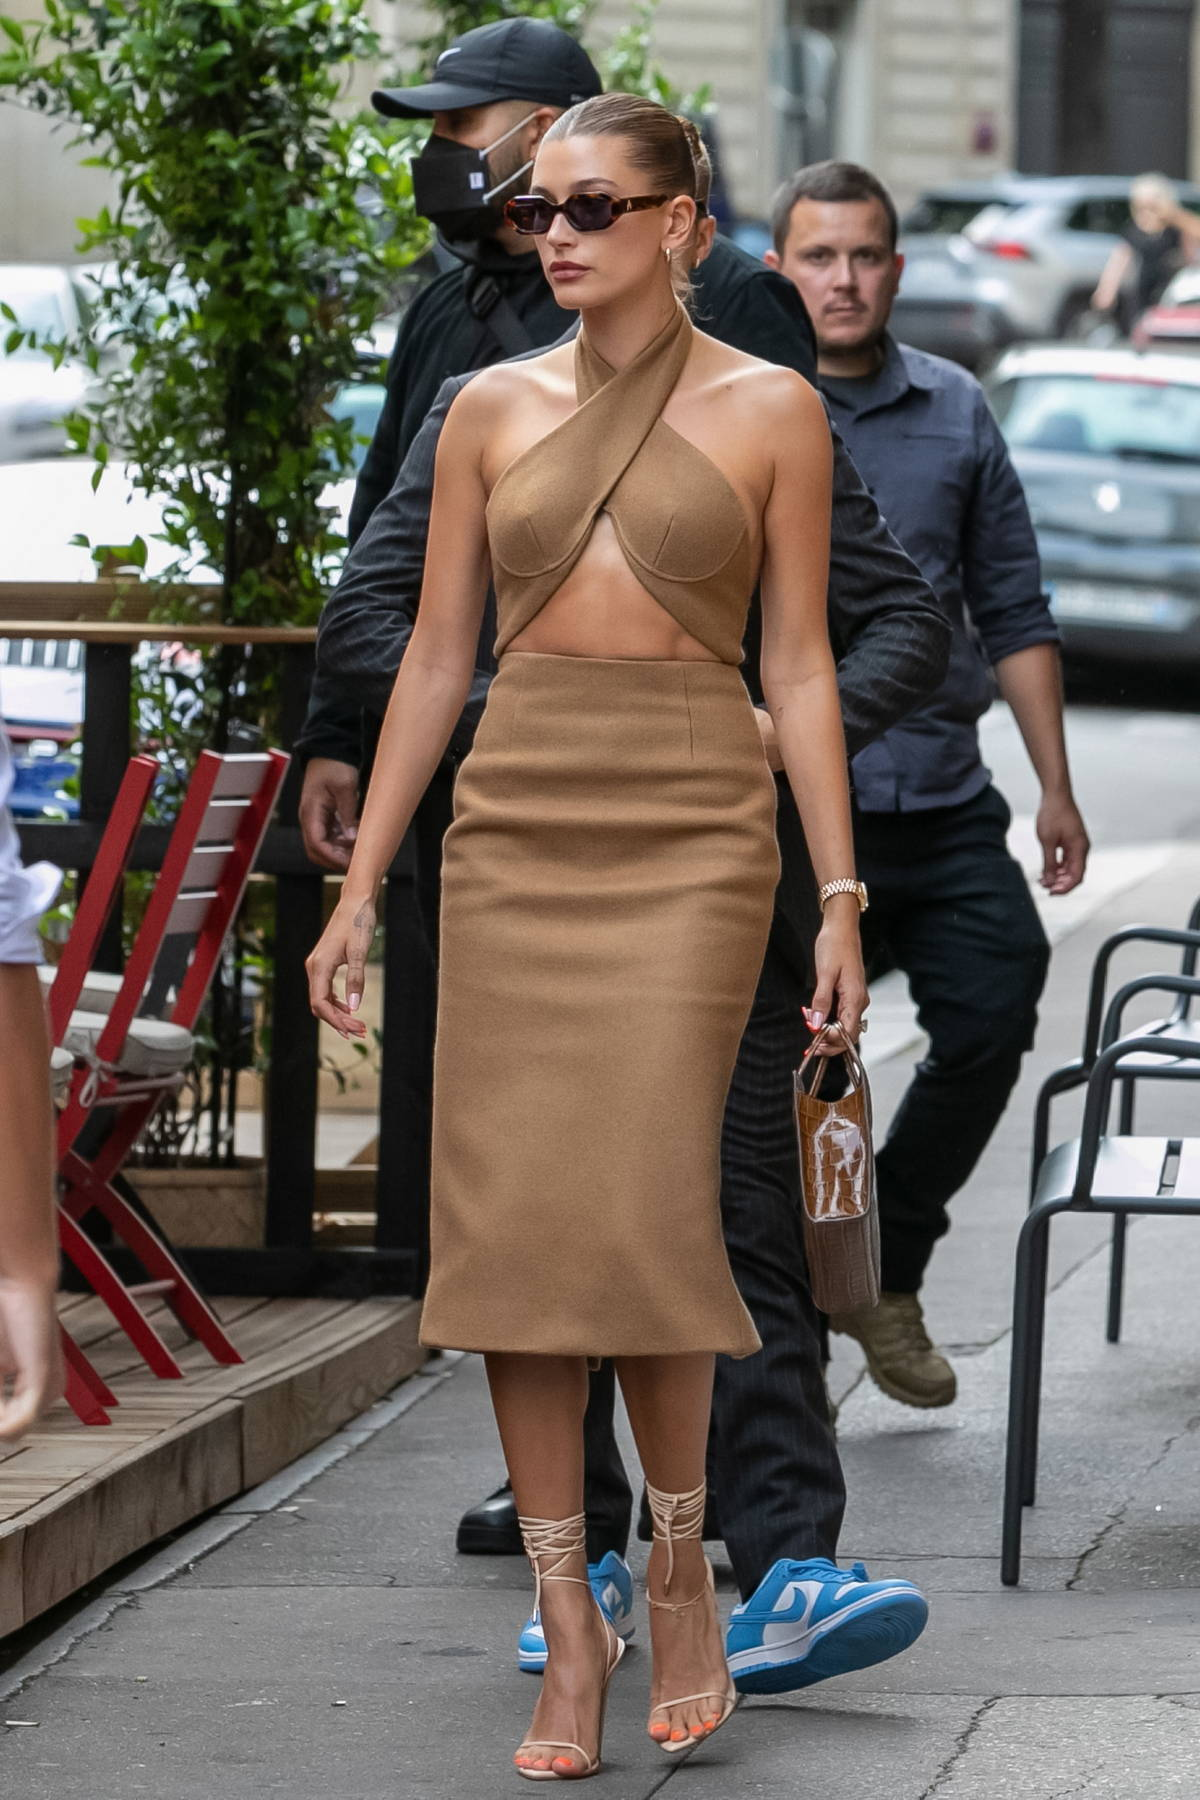 Hailey Bieber stuns in a backless brown dress while out with Justin Bieber at Dinand by Ferdi restaurant in Paris, France